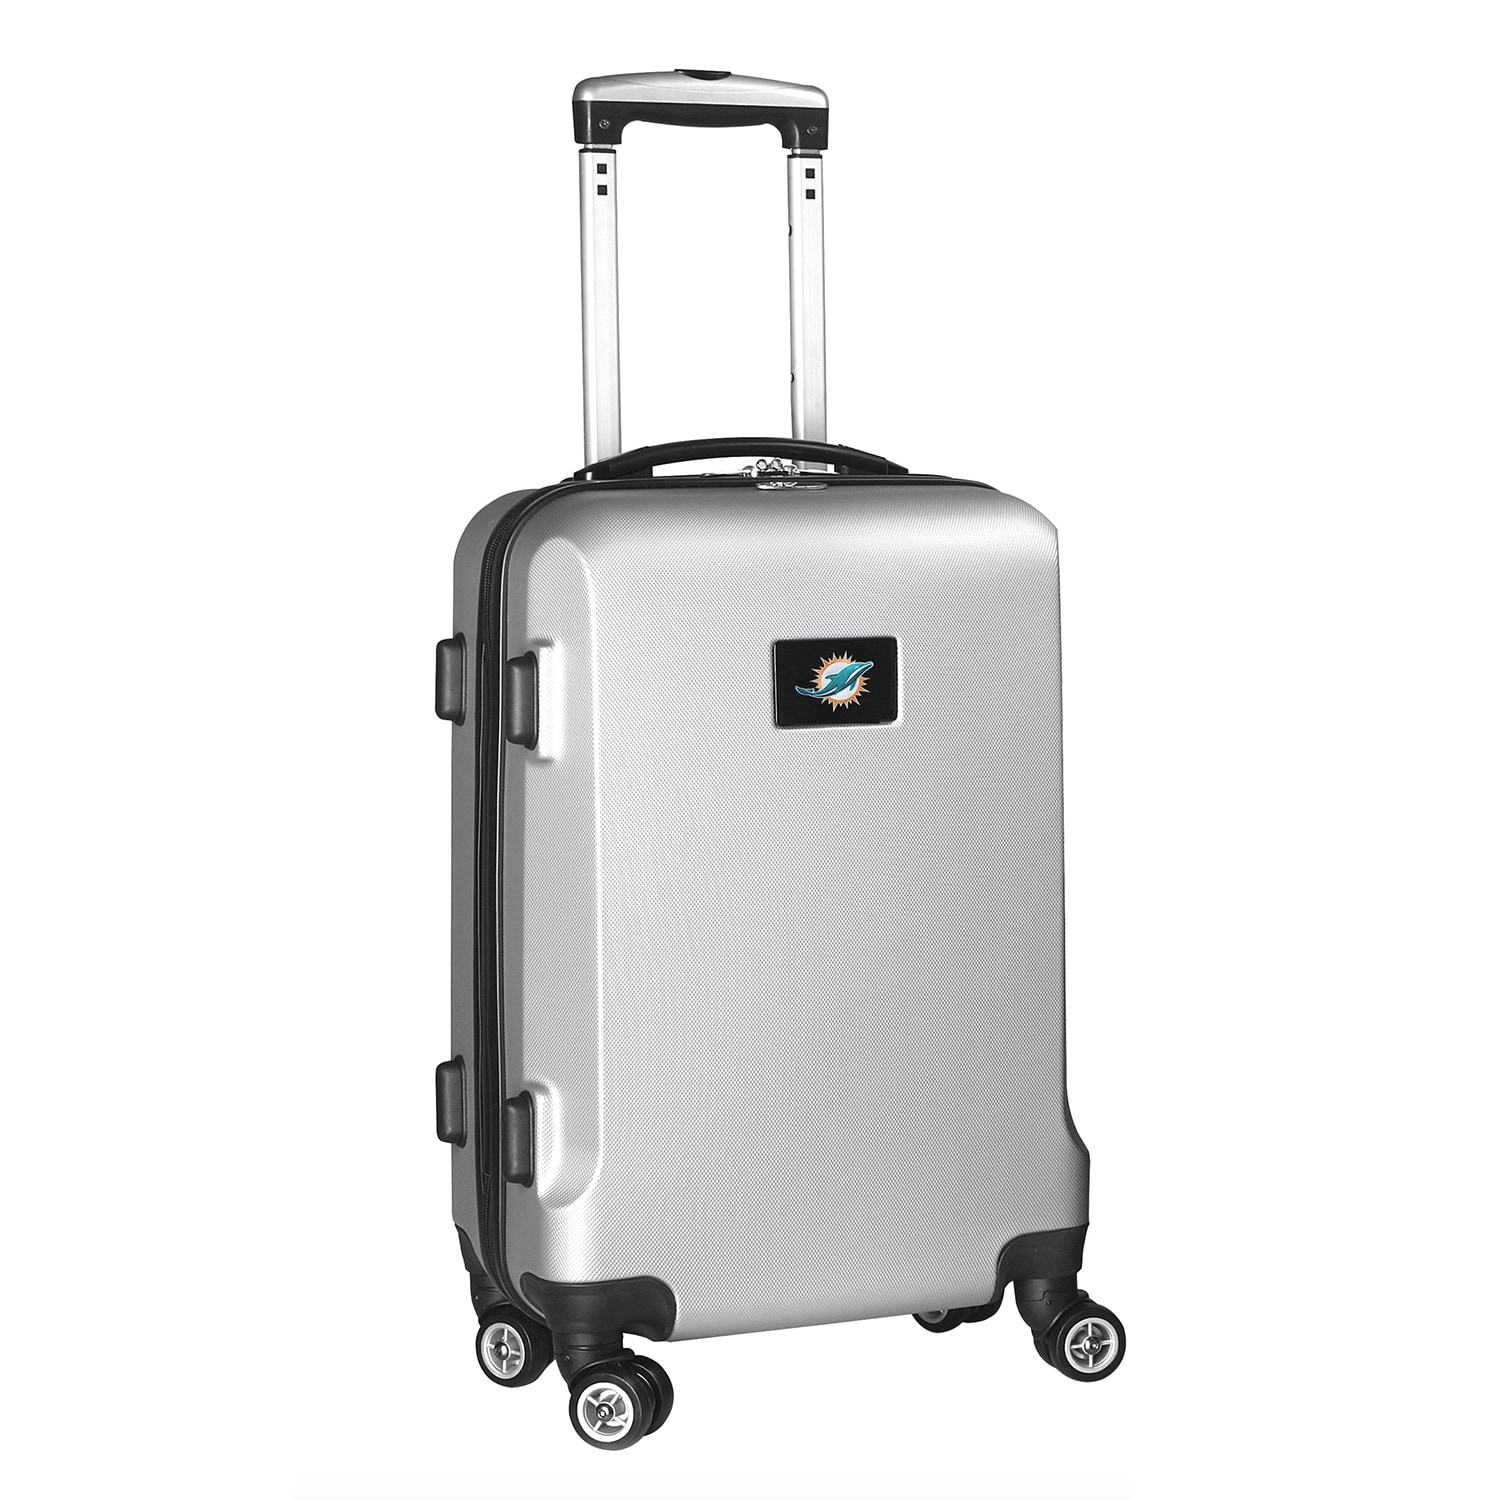 "Miami Dolphins 21"" 8-Wheel Hardcase Spinner Carry-On - Silver"